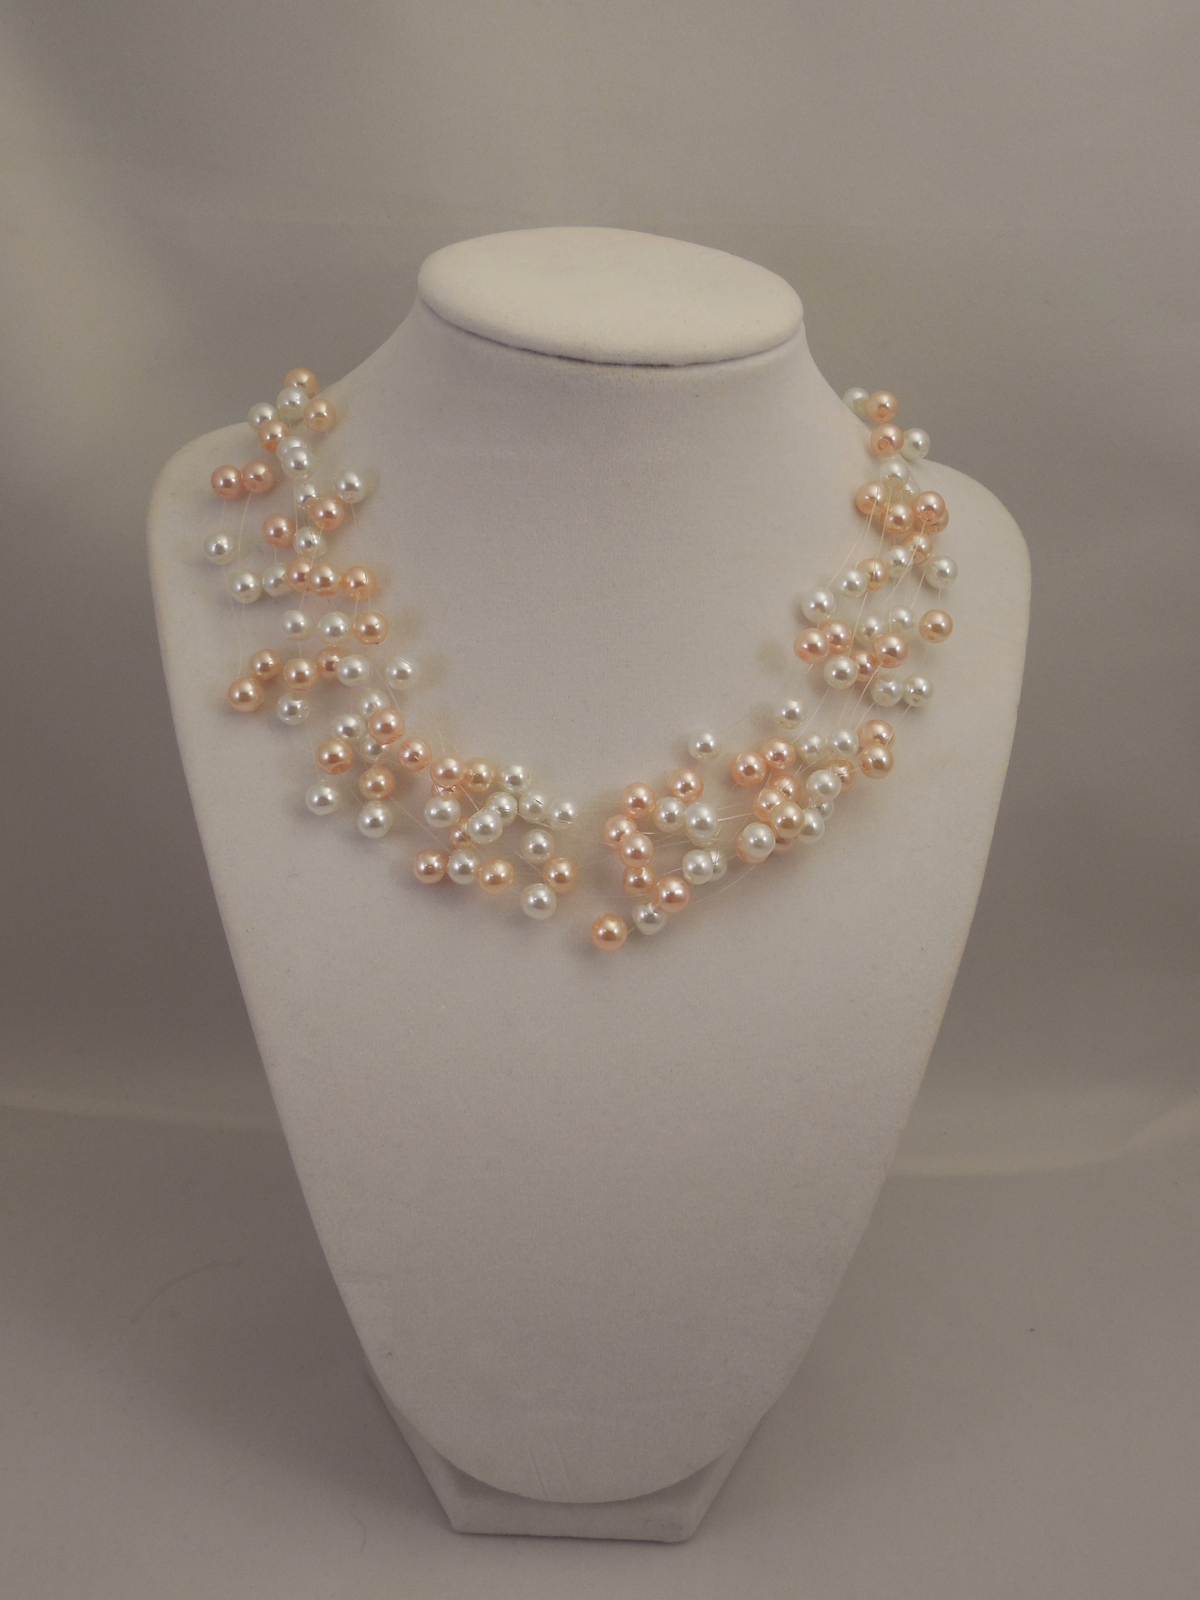 Illusion Multi Strand Necklace with 6mm White and Peach Pink Glass Pearls